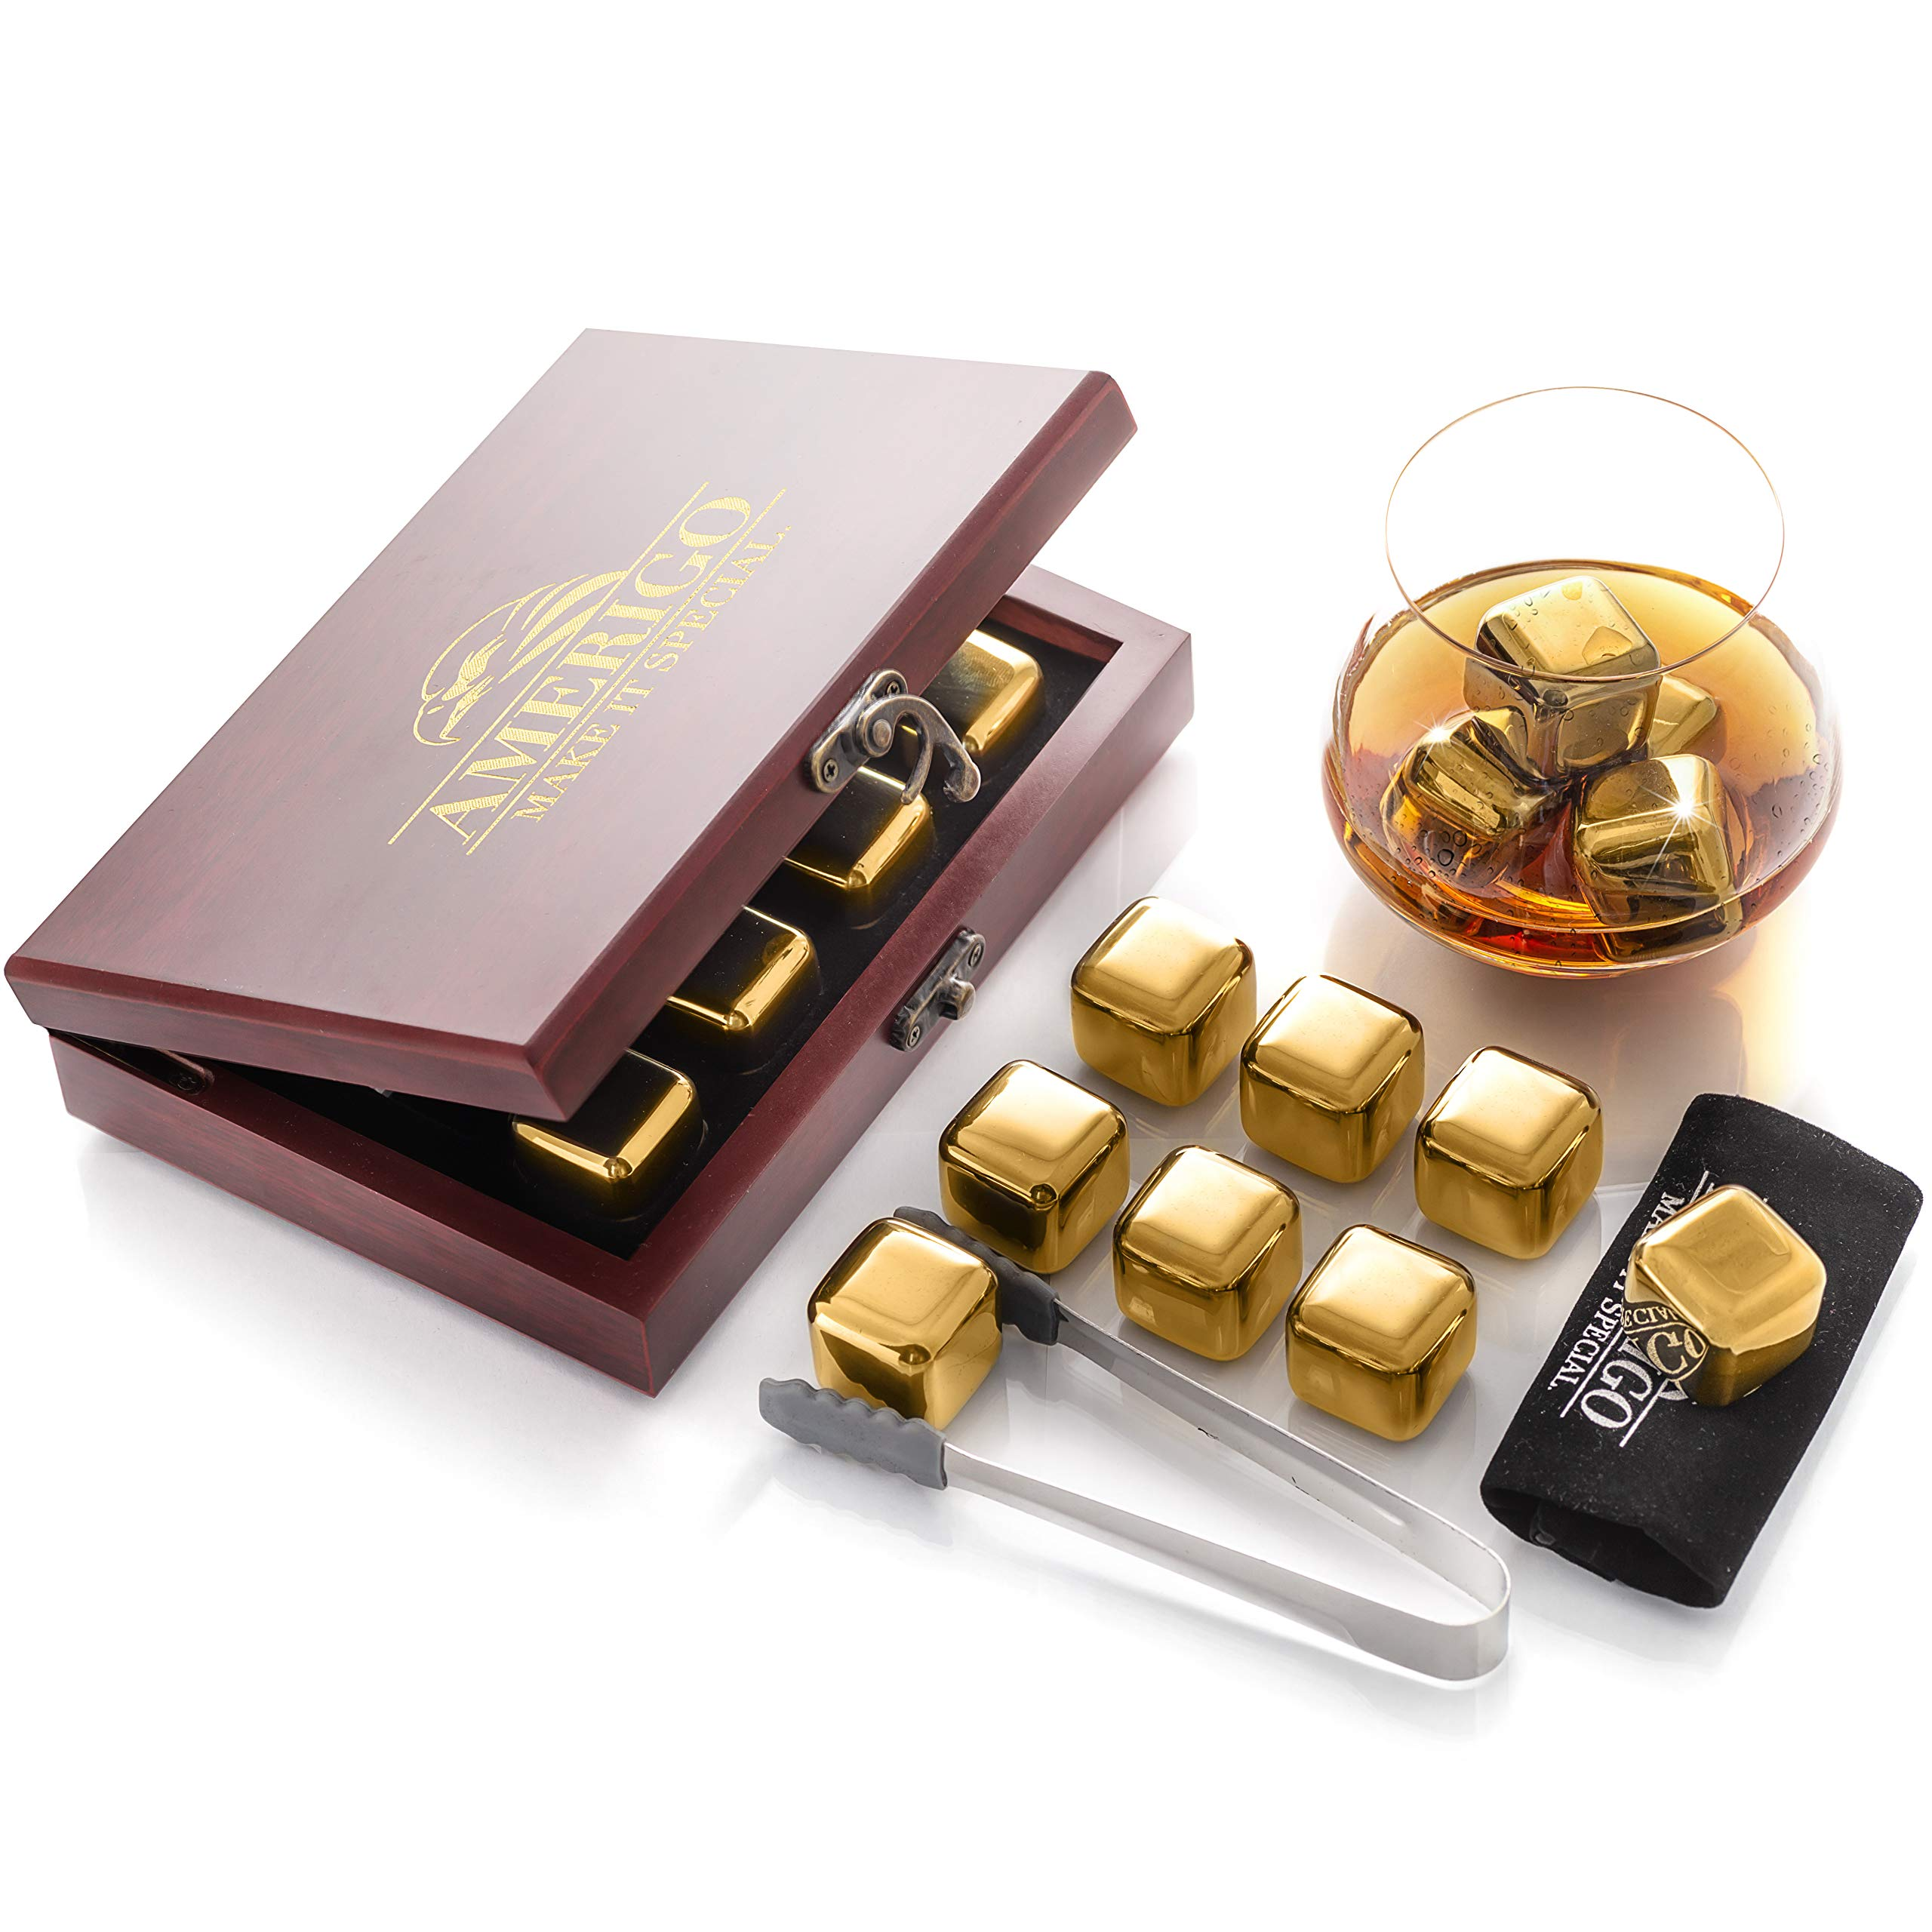 Amerigo Gold Stainless Steel Whiskey Stones Gift Set in Beautiful Wooden Box - Reusable Ice Cubes for Drinks - Bar Accessories - Whiskey Rocks - Whisky Gifts for Men - Chilling Stones + Ice Tongs by Amerigo